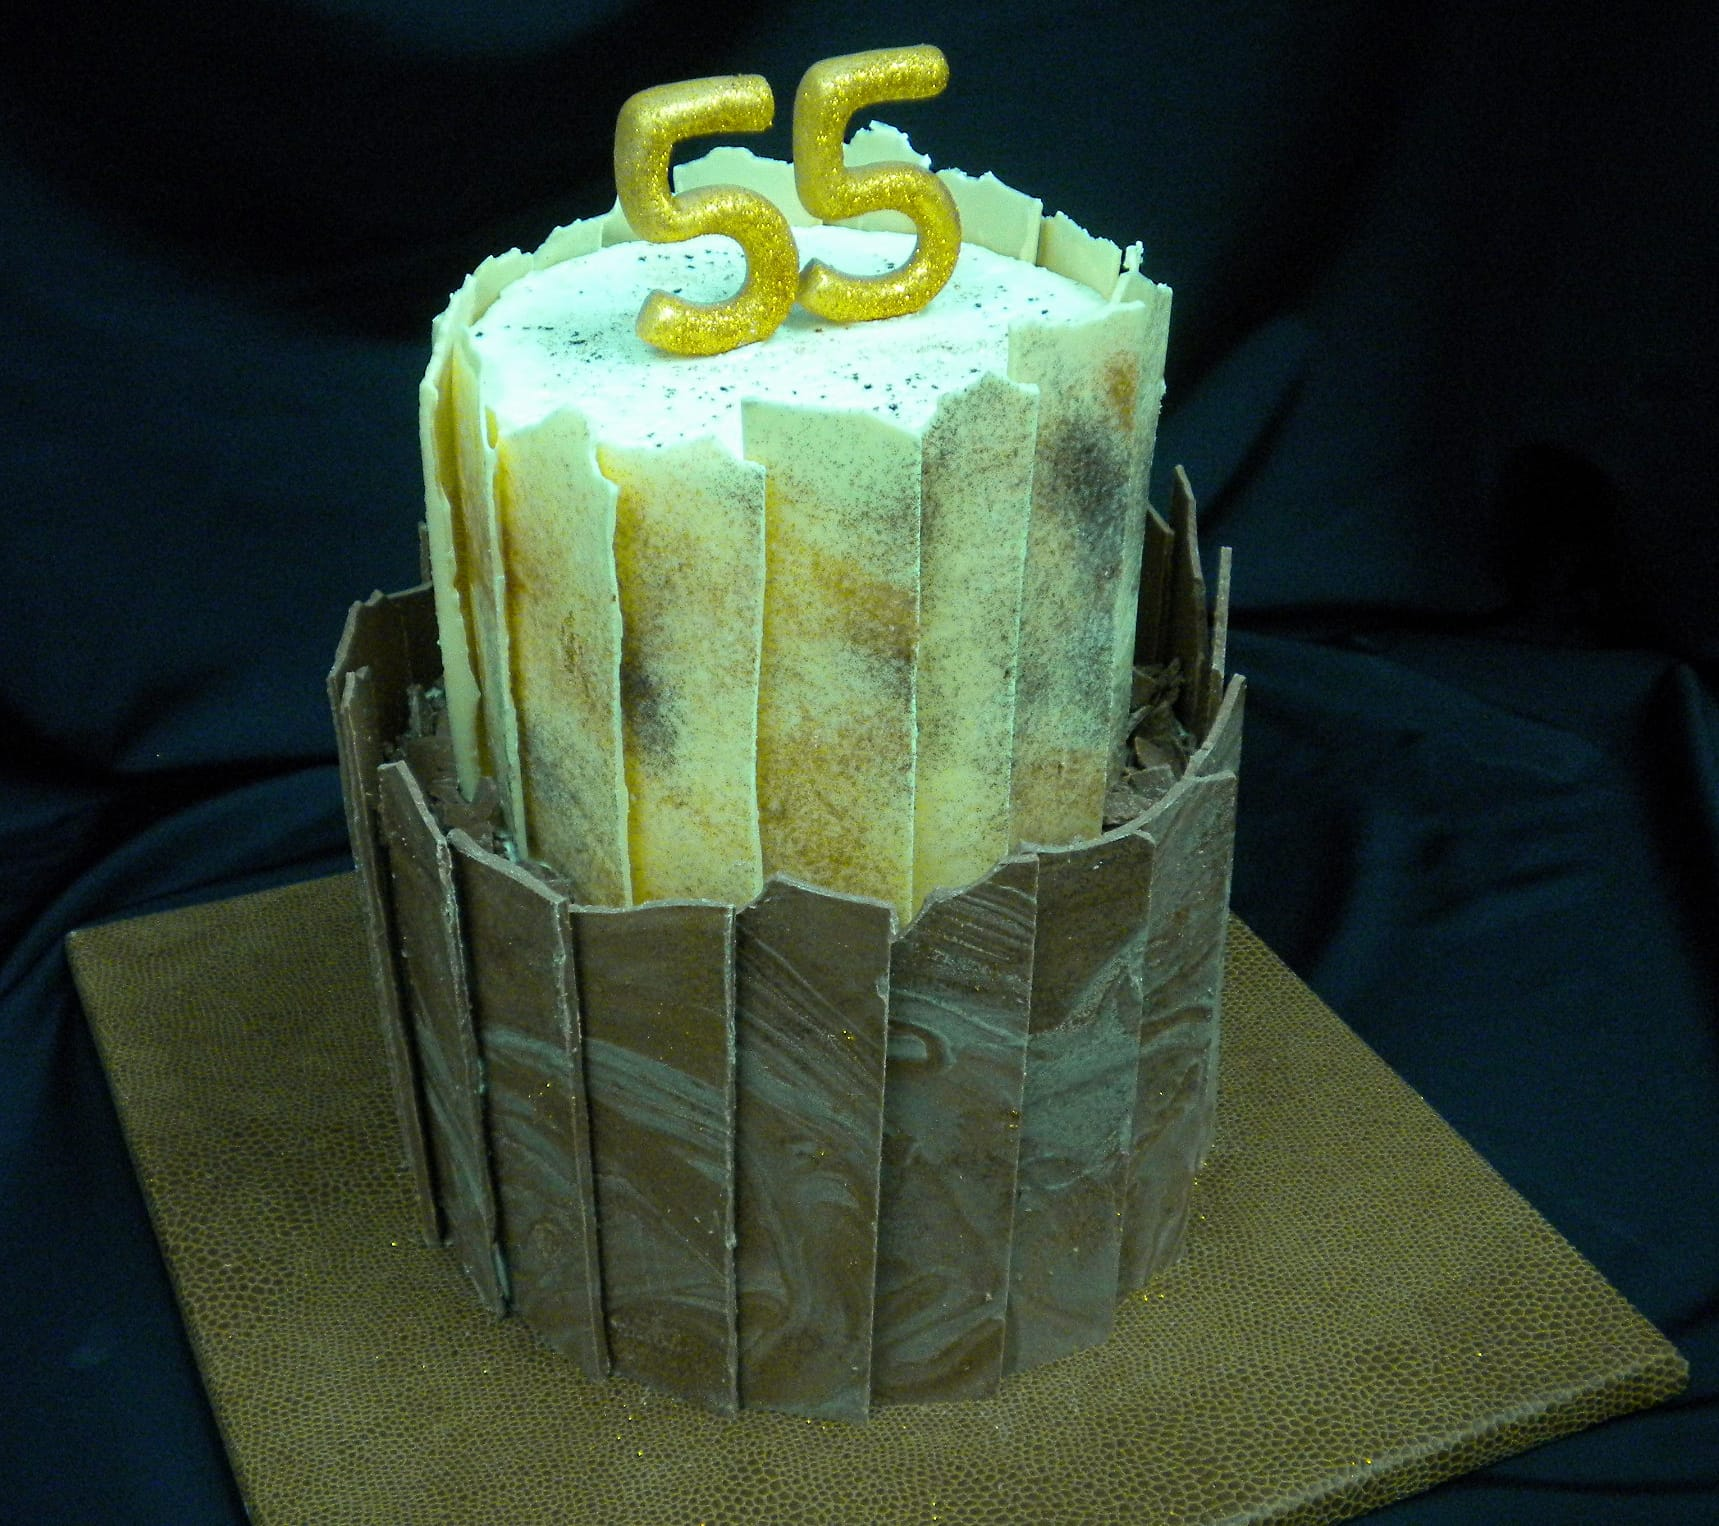 55th Anniversary Cake with Chocolate Shards